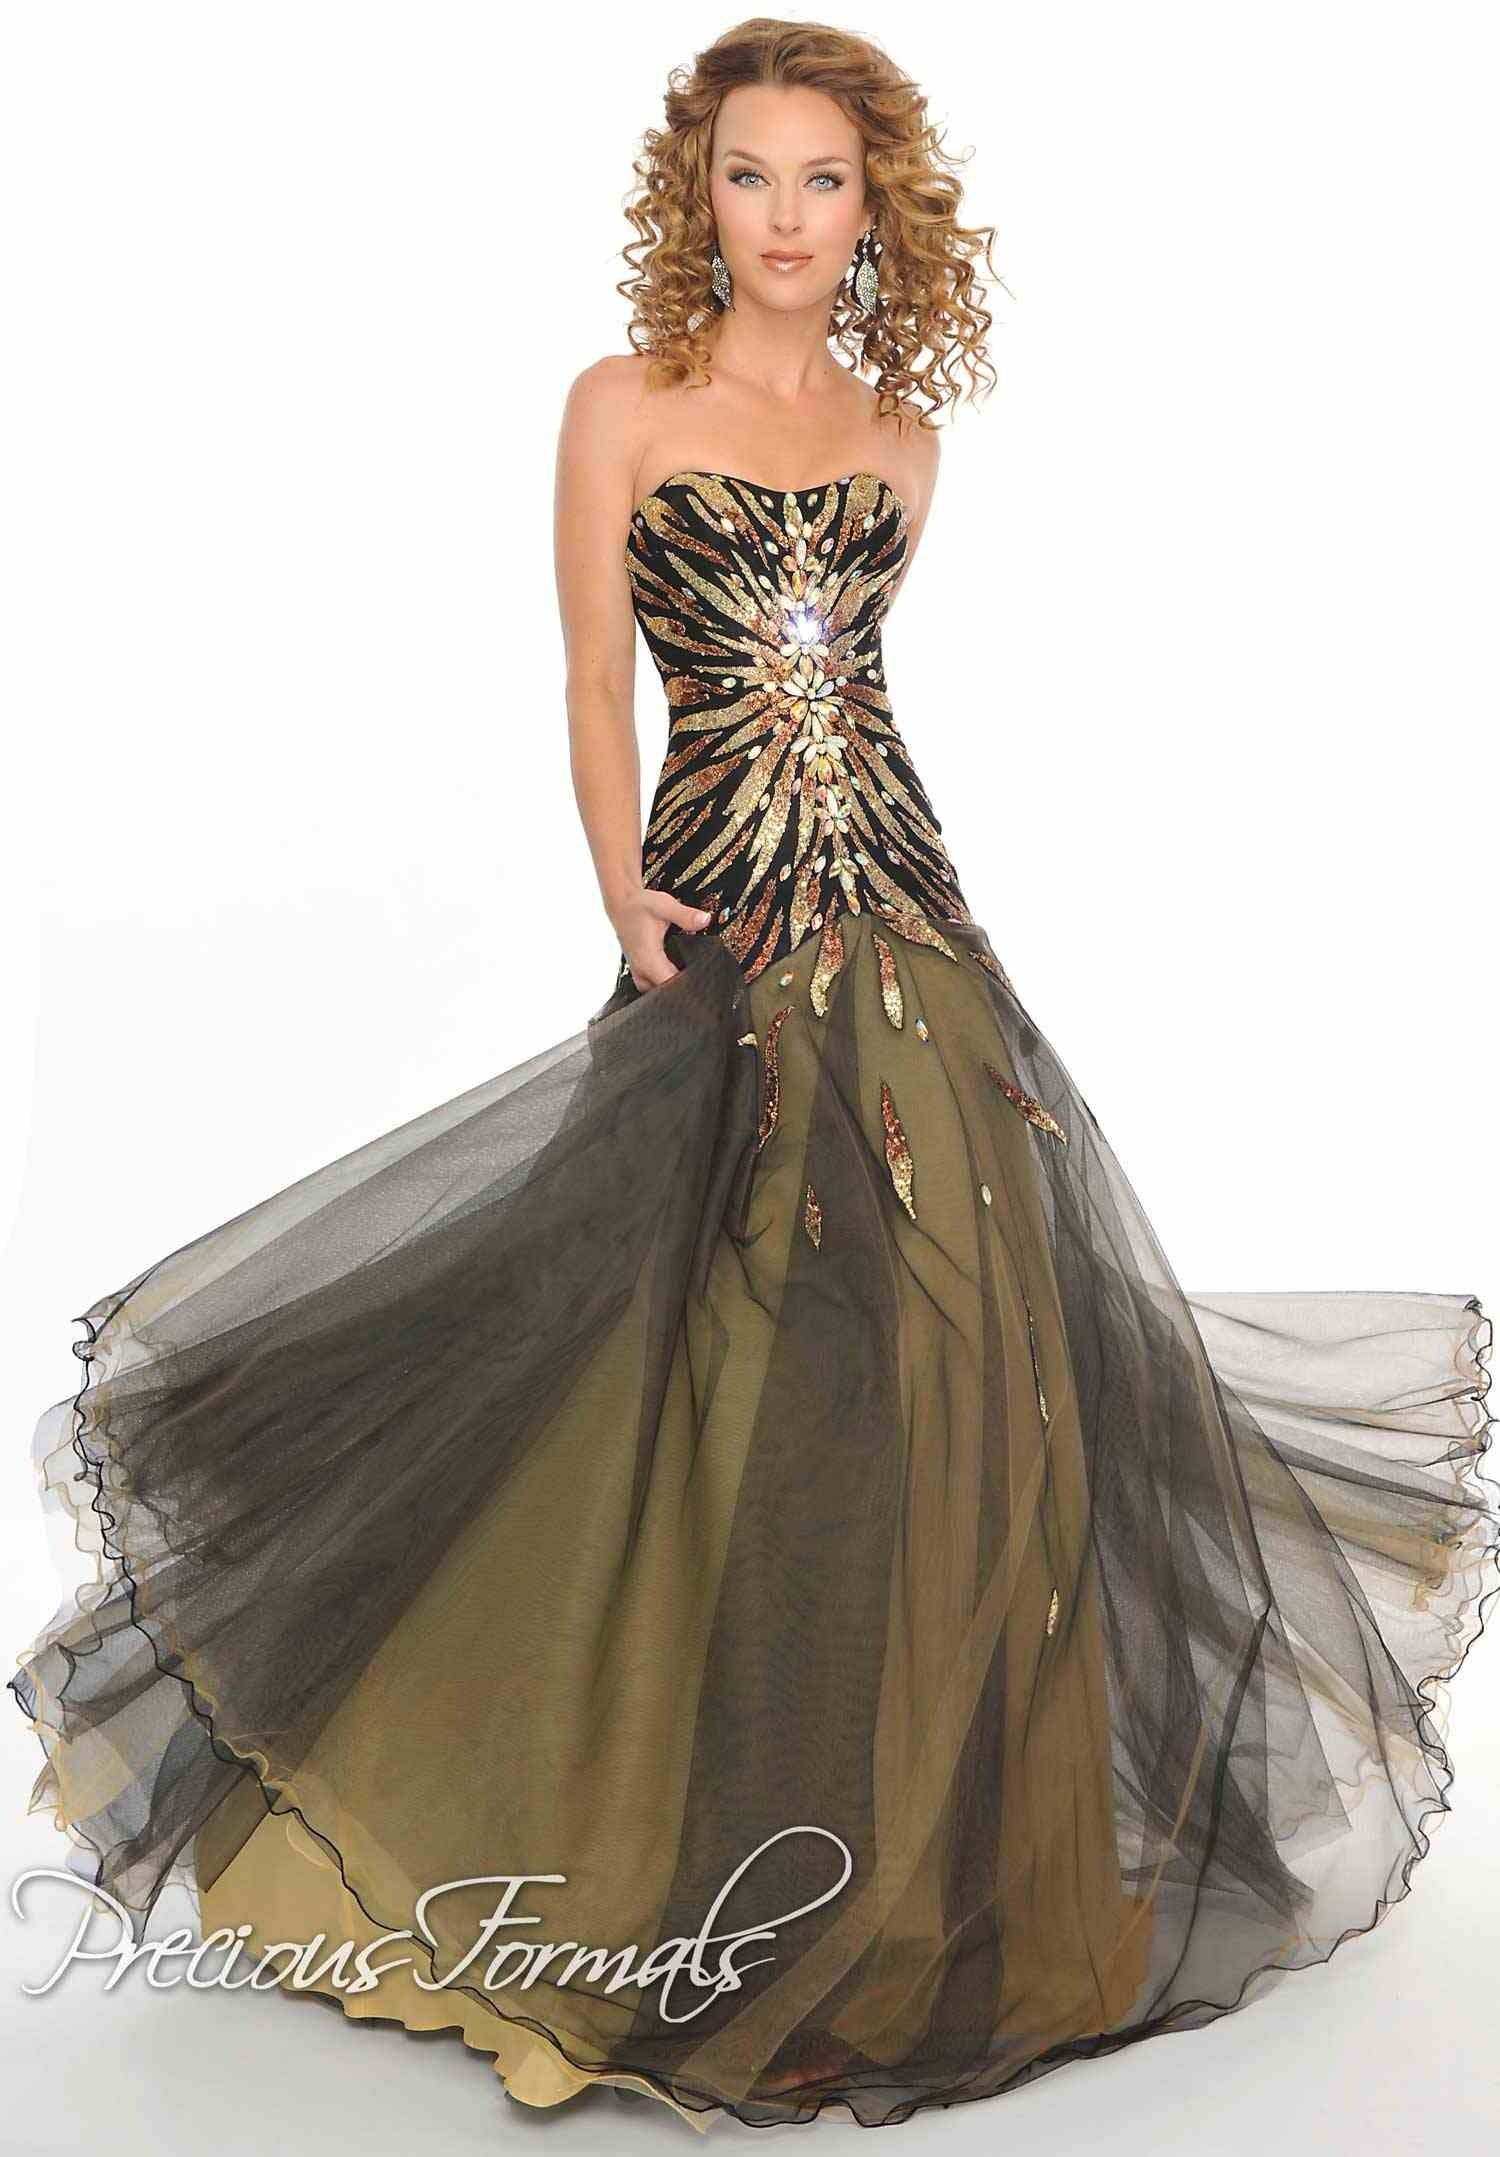 Pin by Bri Coval on Gowns | Pinterest | Gowns